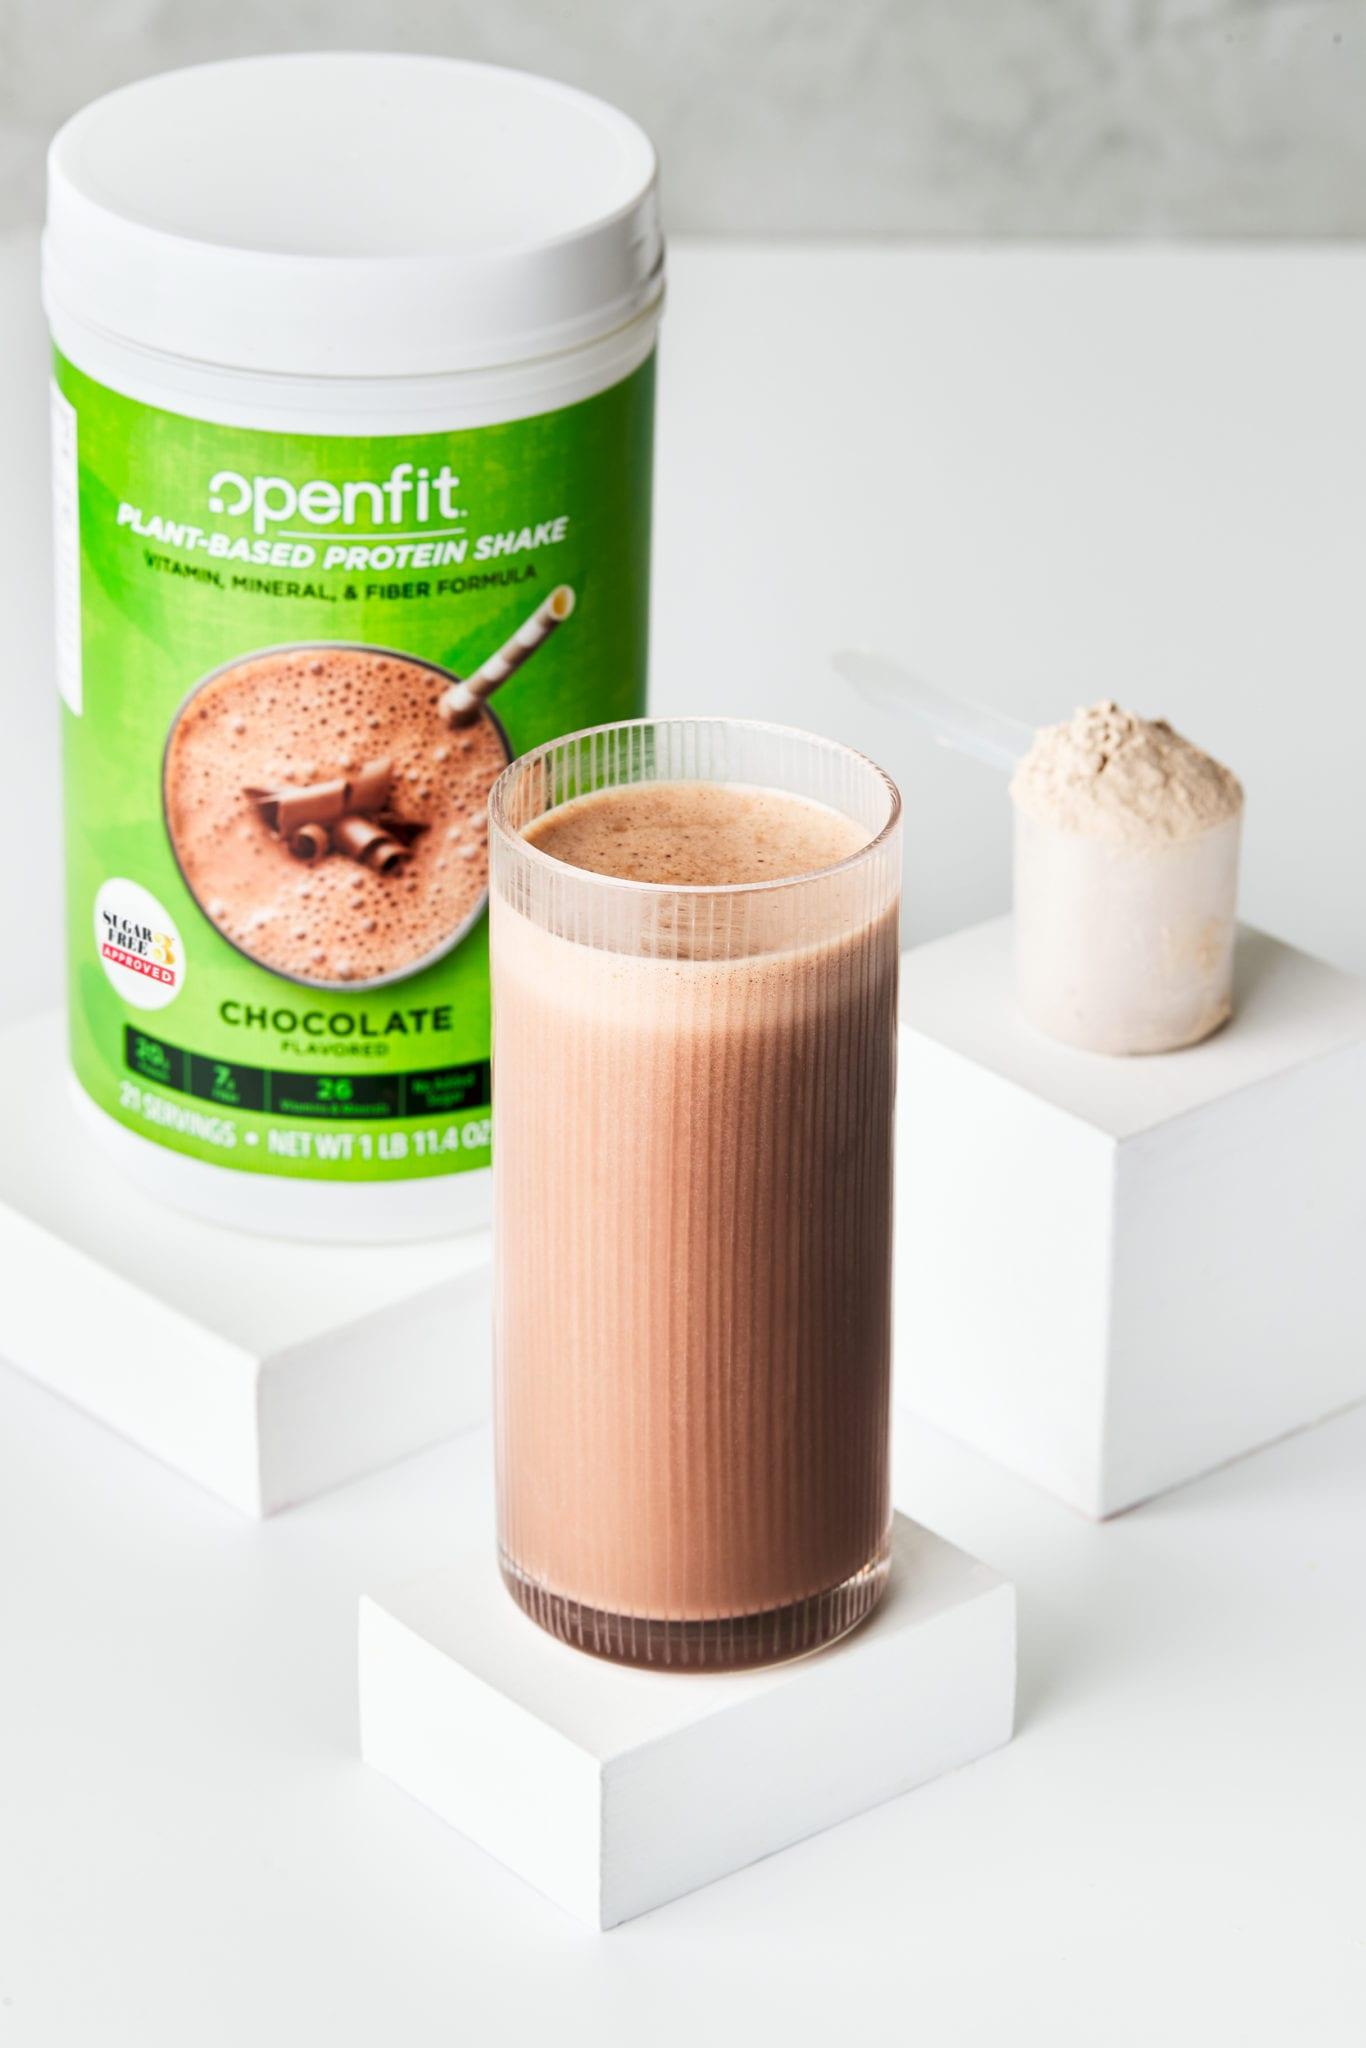 plant based protein shake - drink powder and container